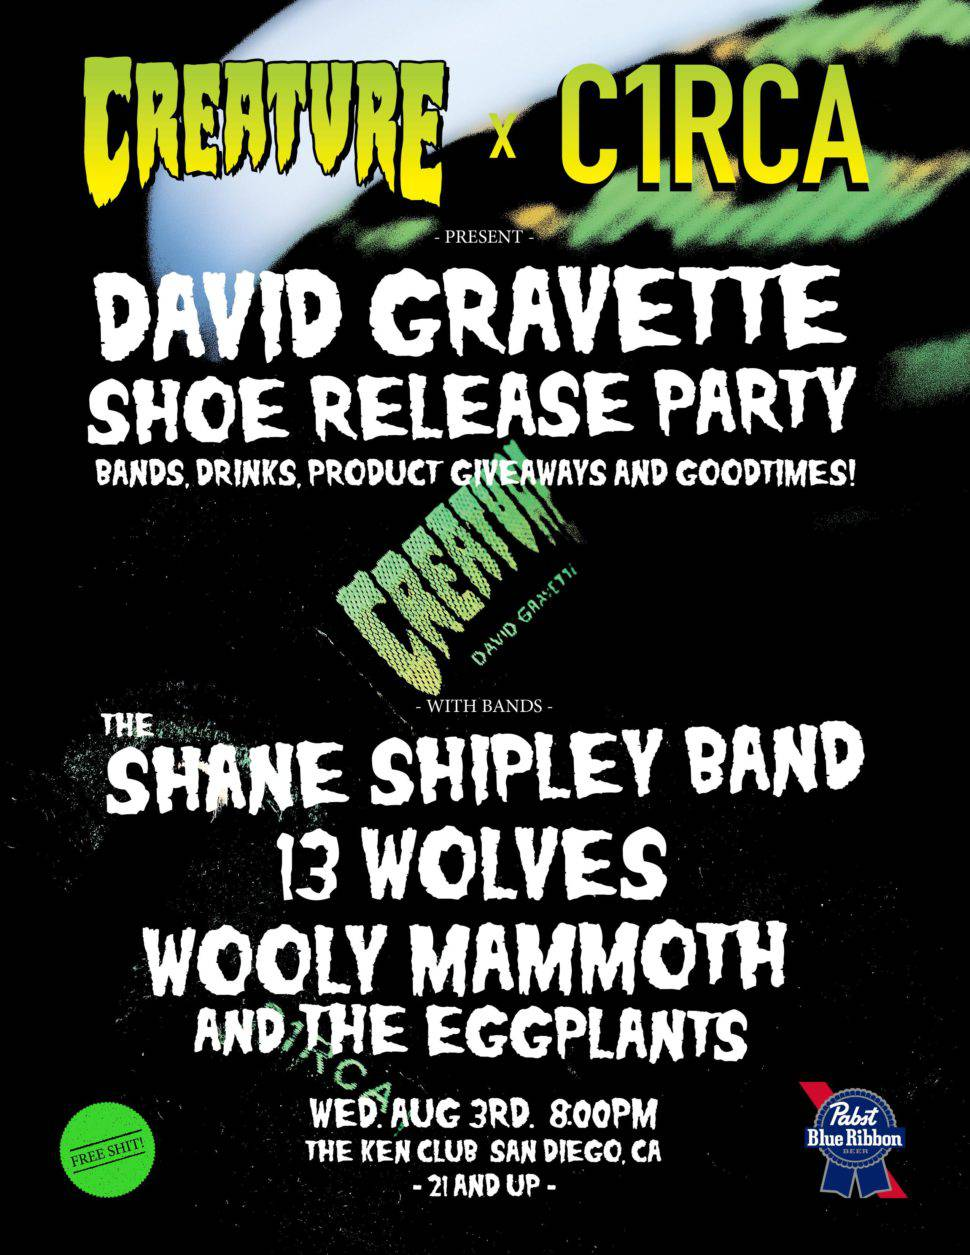 Circa X Creature -- David Gravette Shoe Release Party